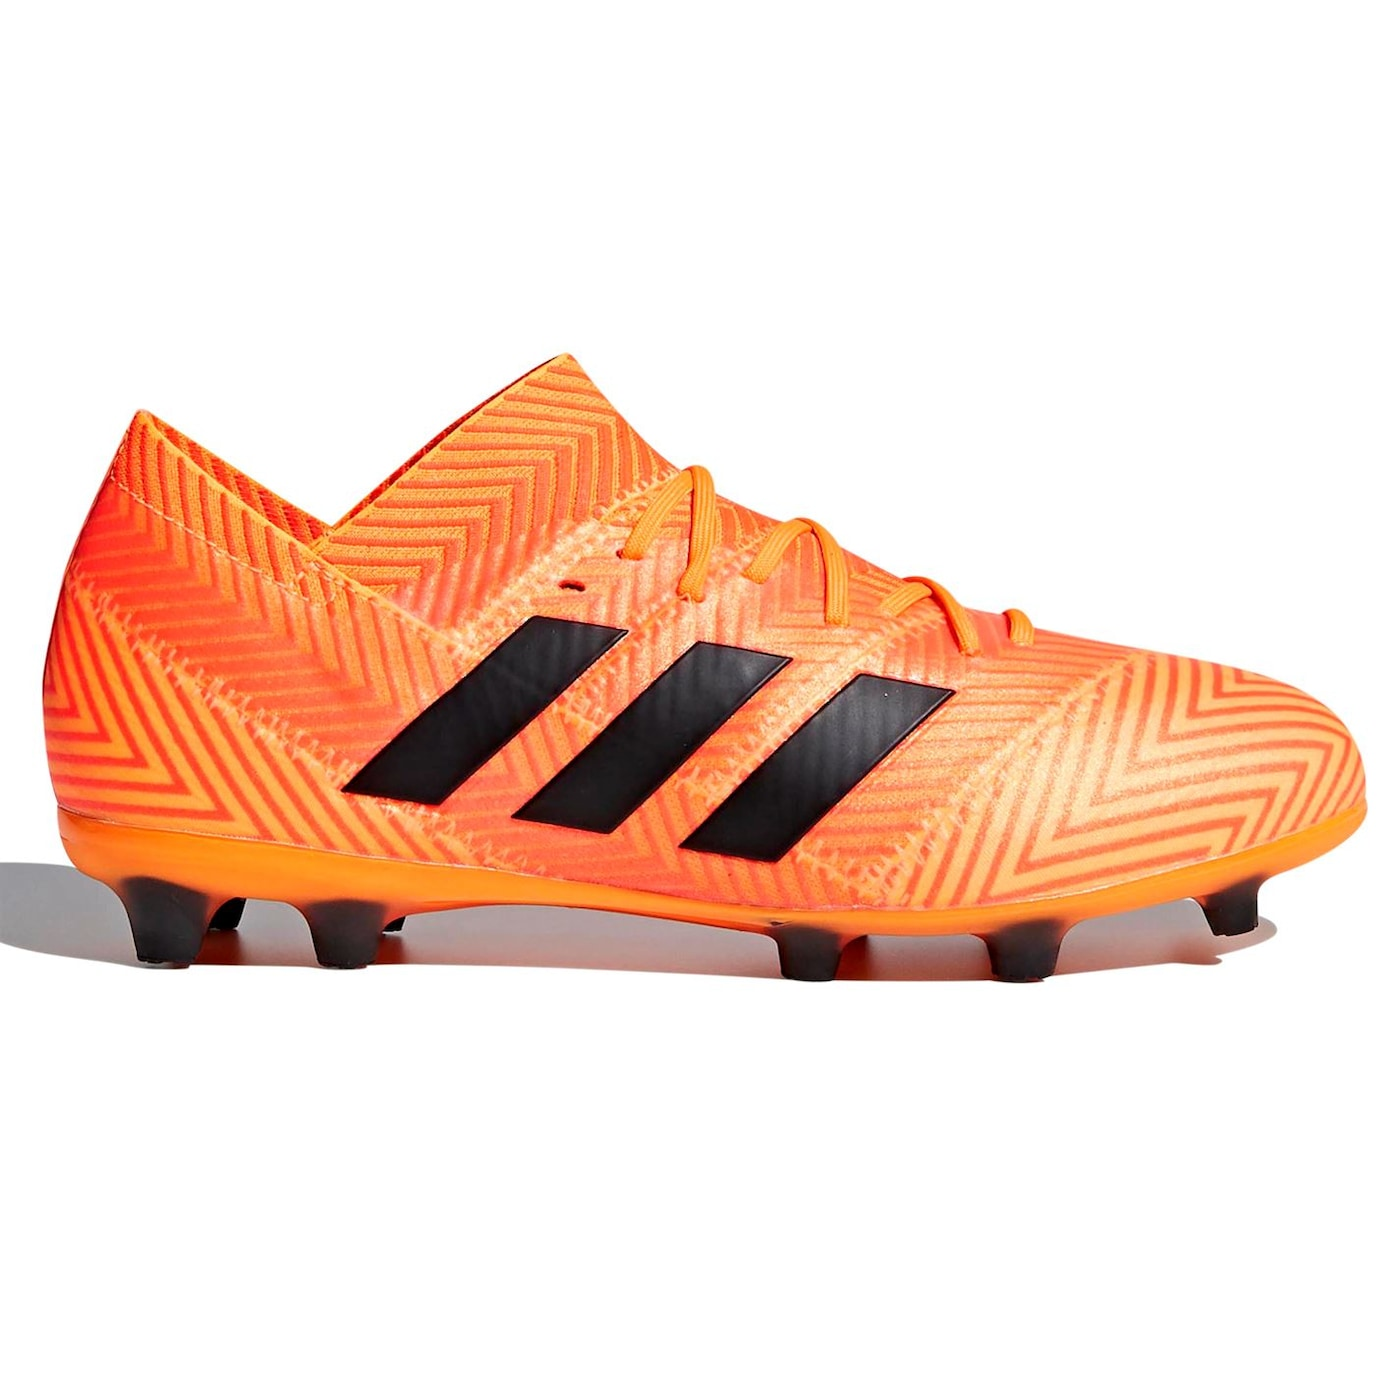 Adidas Nemeziz 18.1 Junior FG Football Boots